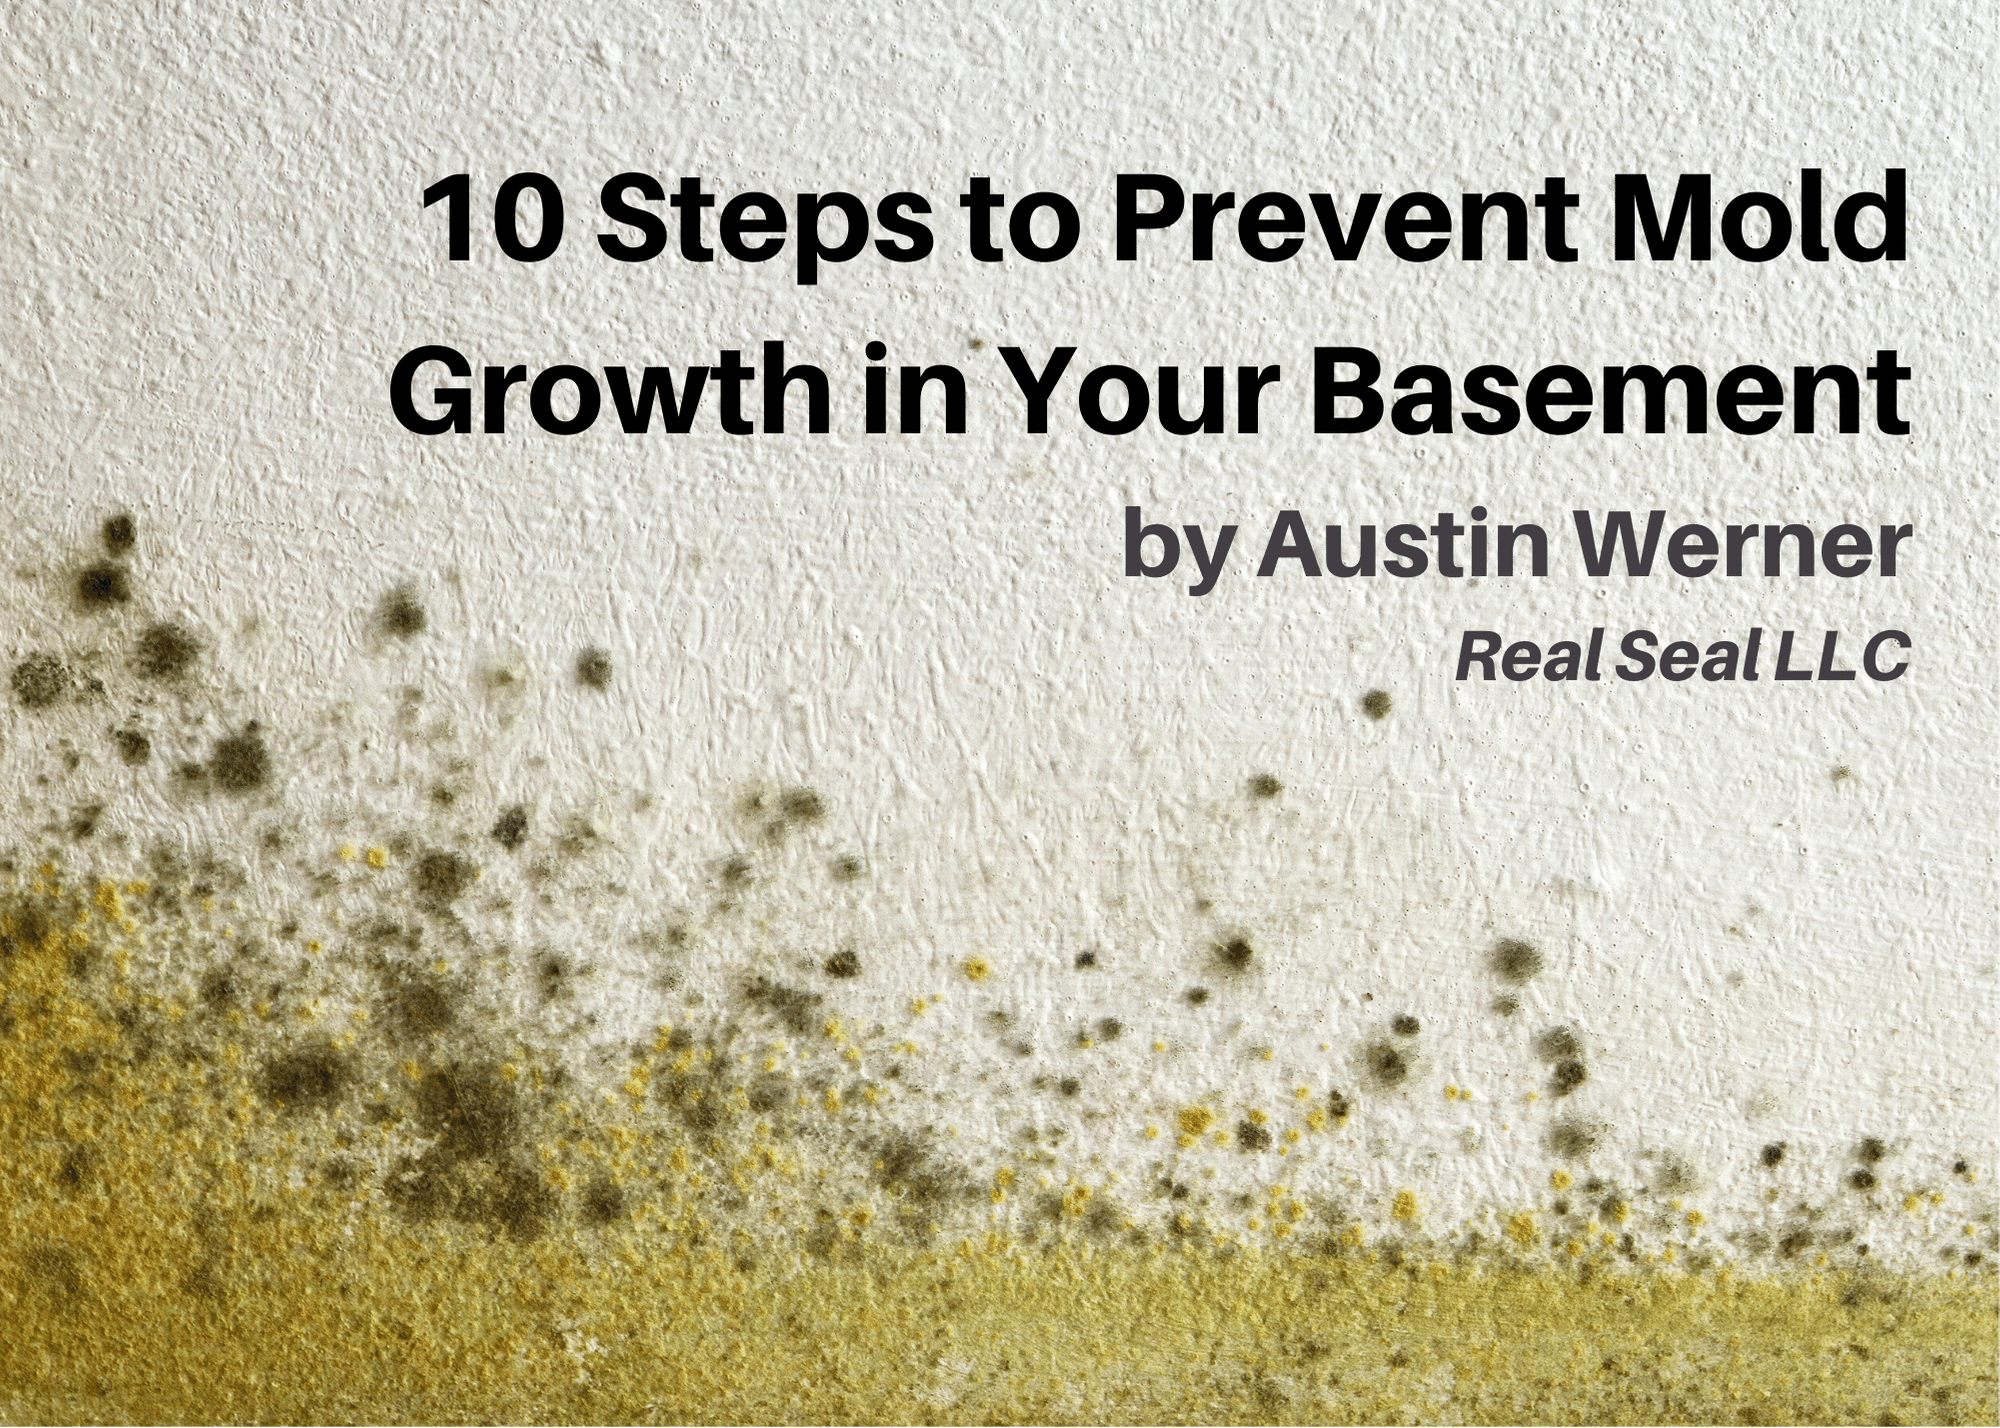 10 Steps to Prevent Mold Growth in Your Basement